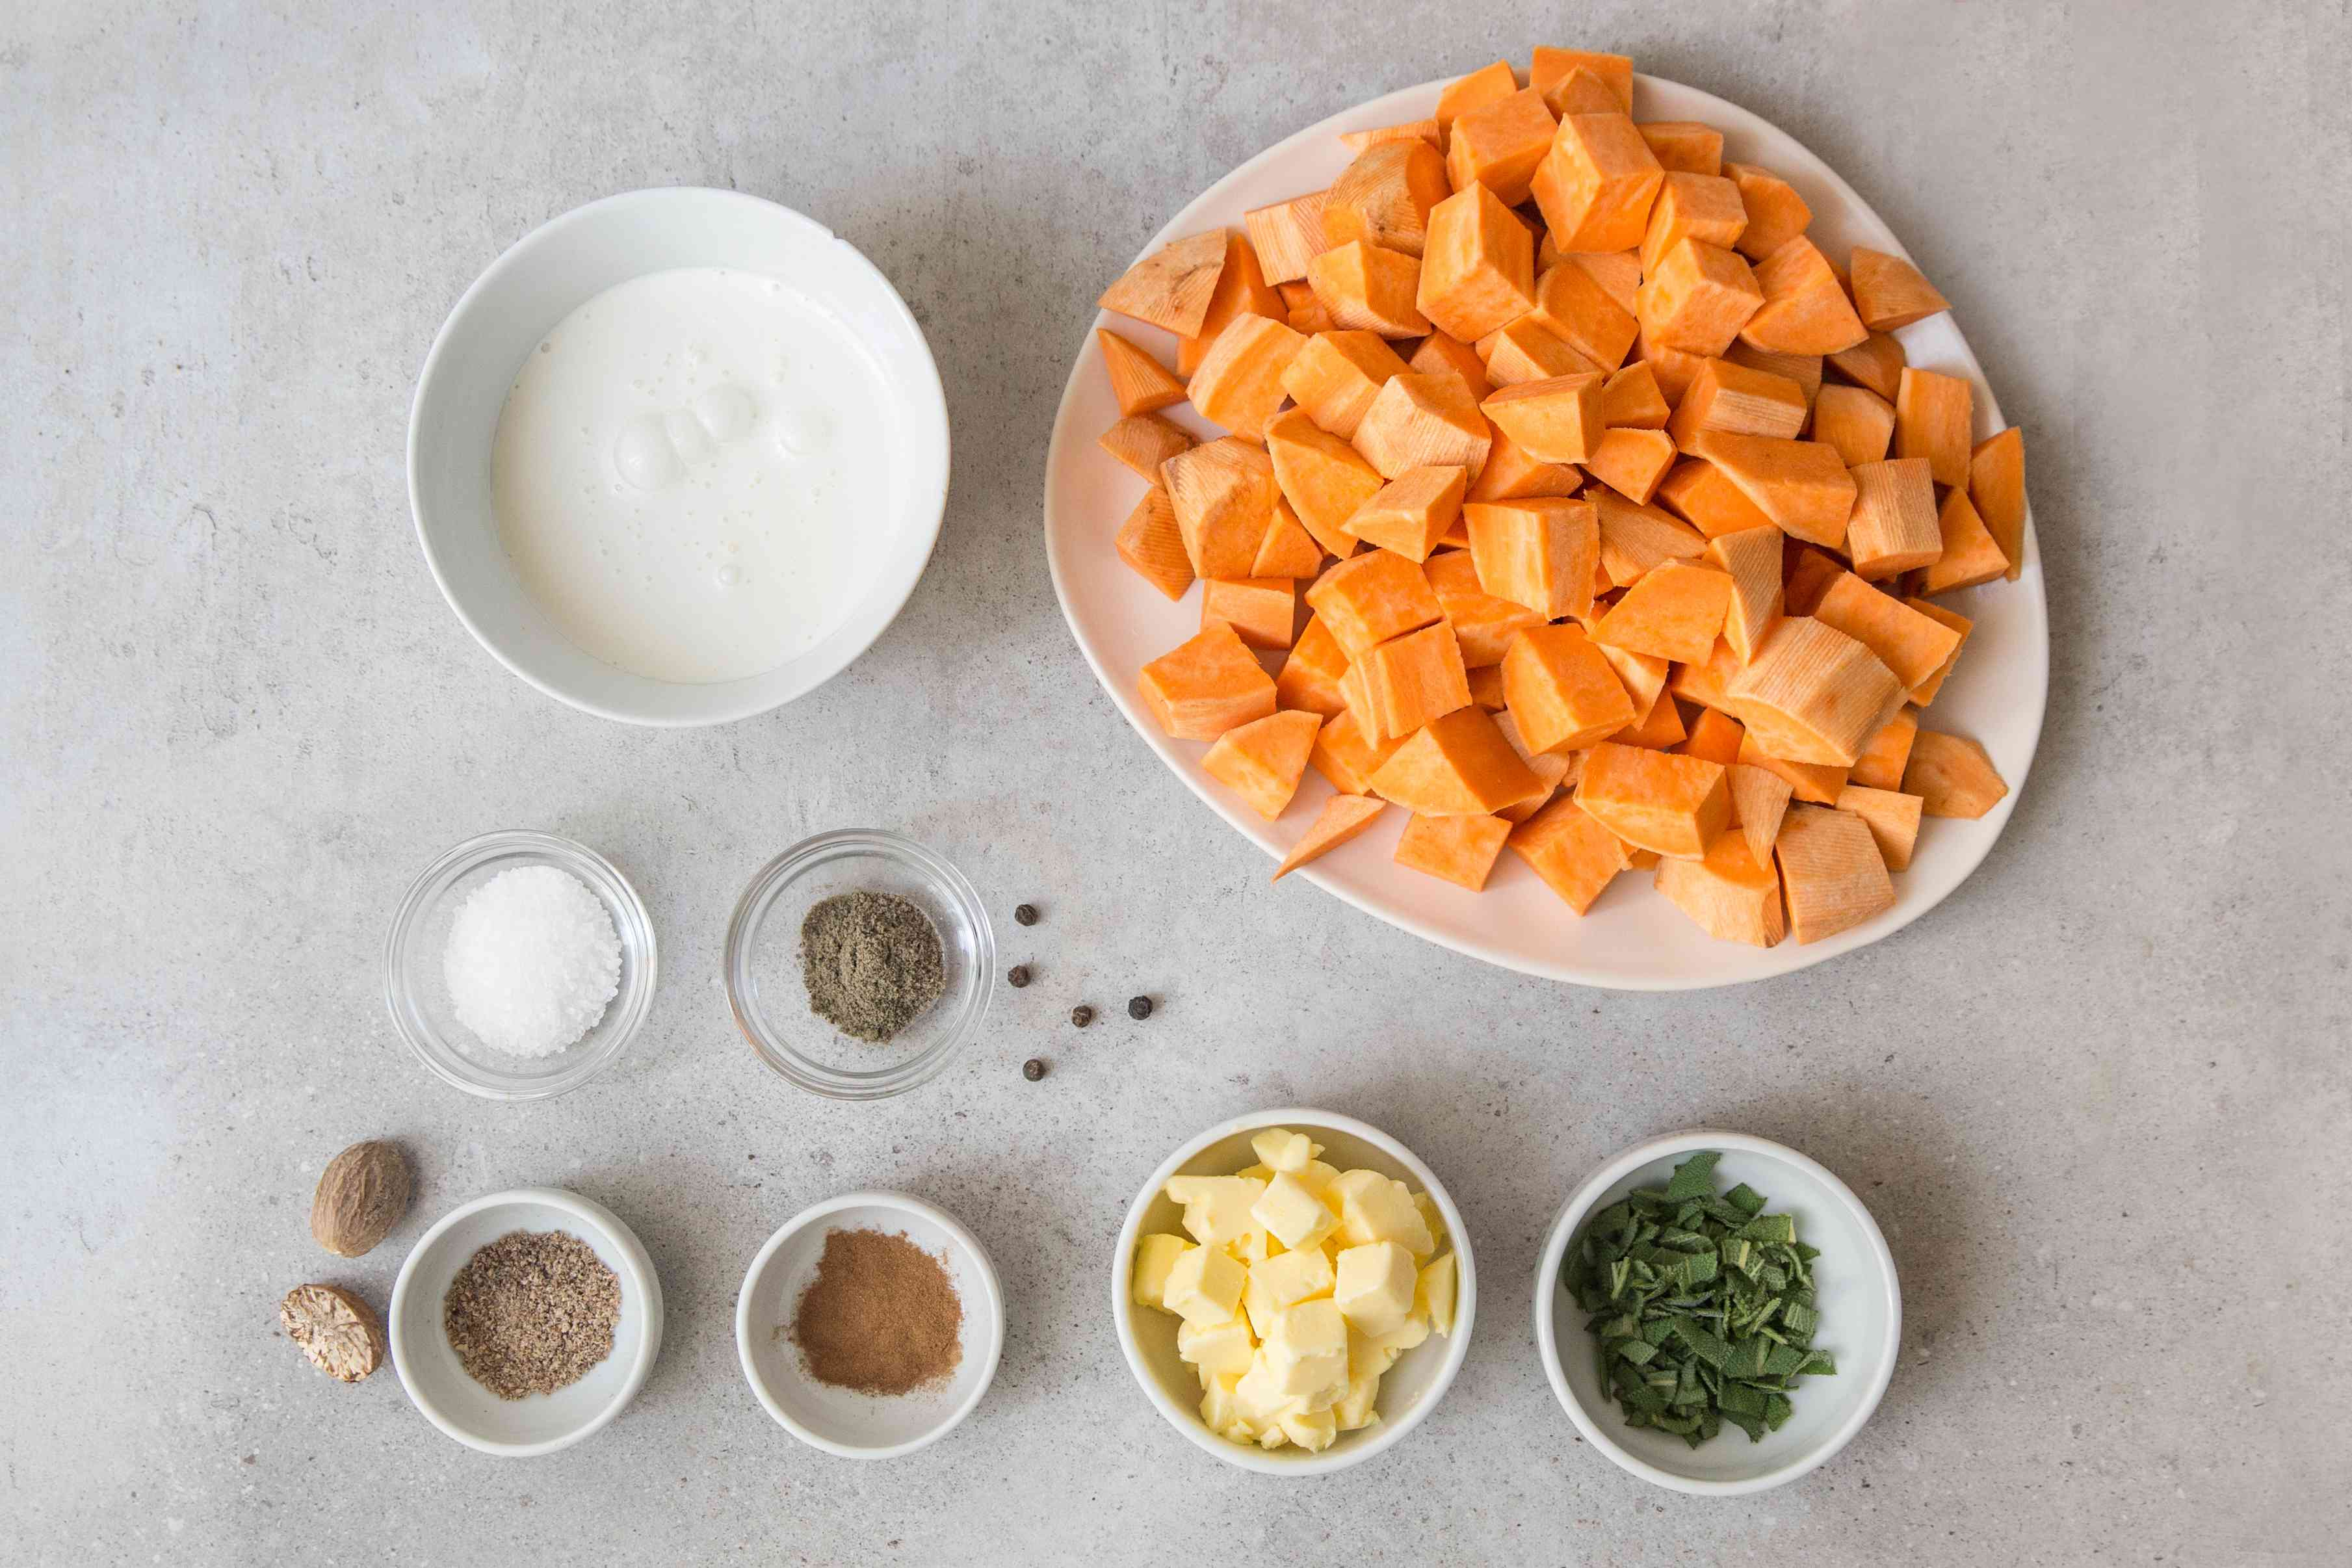 Ingredients for mashed sweet potatoes